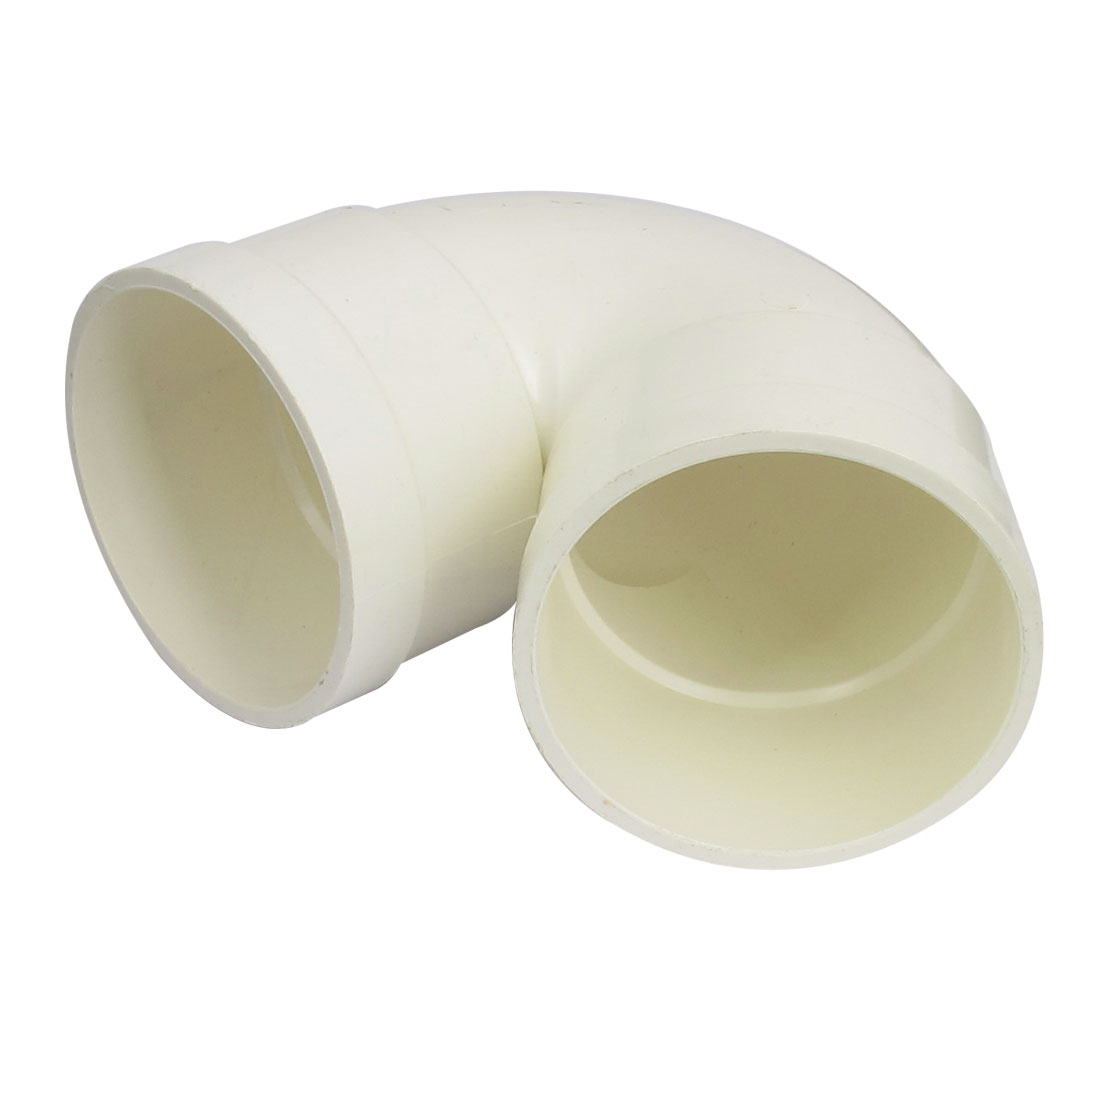 75mm Inner Diameter PVC-U Water Pipe Tube 90 Degree Elbow Type Adapter Connector Fitting